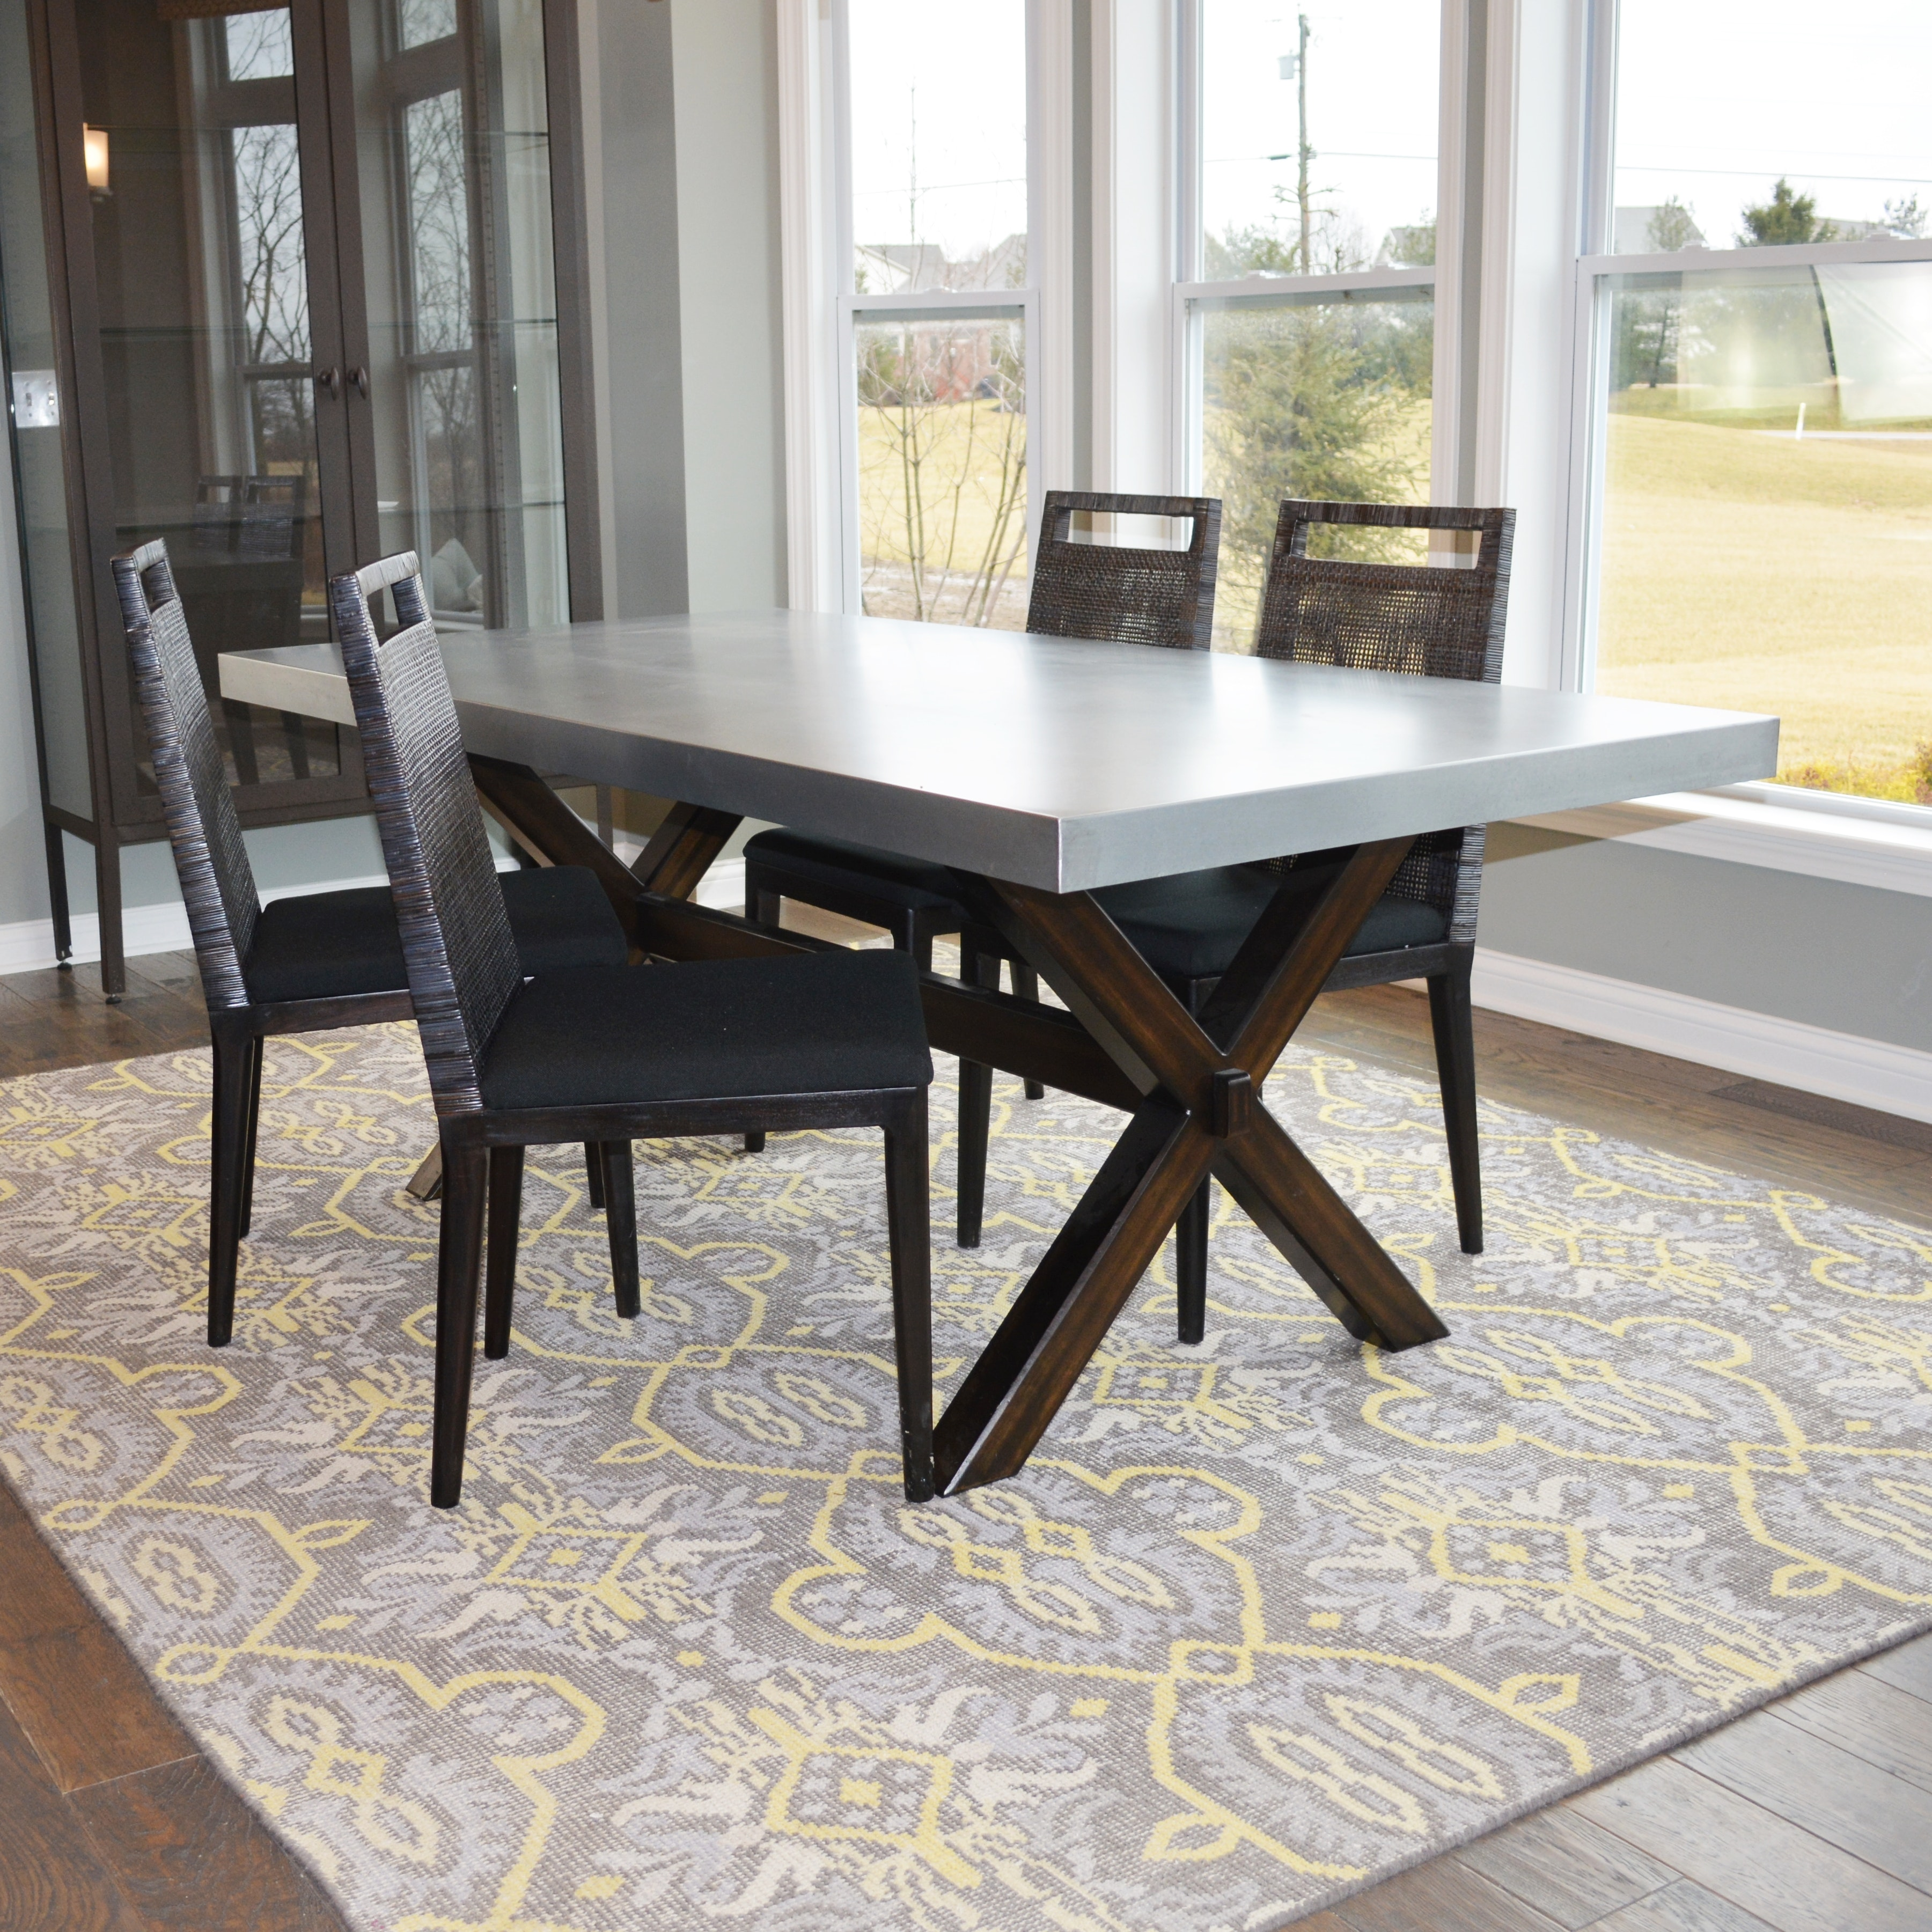 Dining Room Table and Four Woven Back Chairs